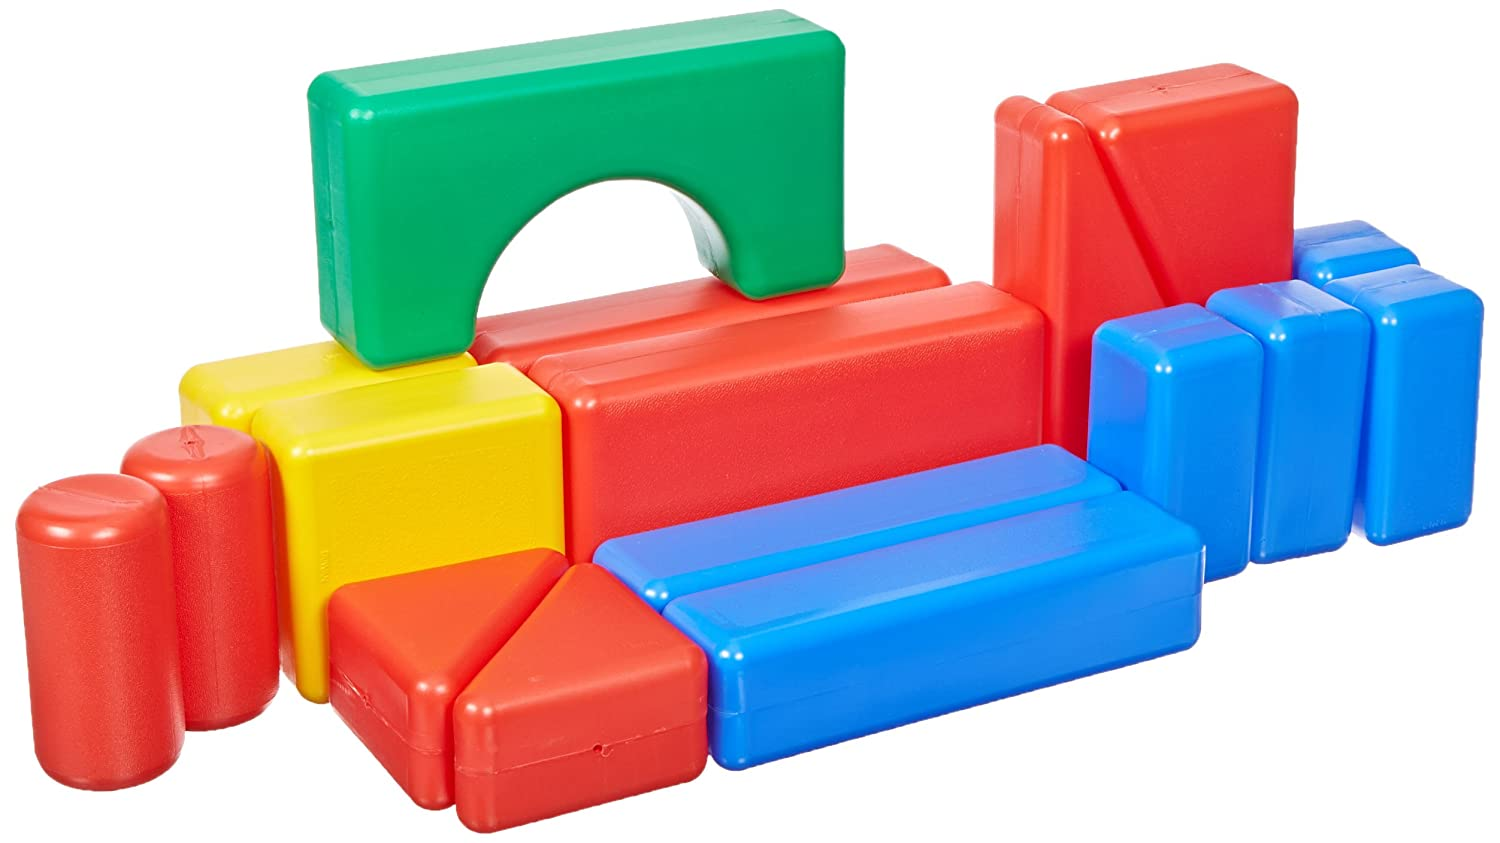 School specialty plastic hollow block 17 pieces baby for Large acrylic block